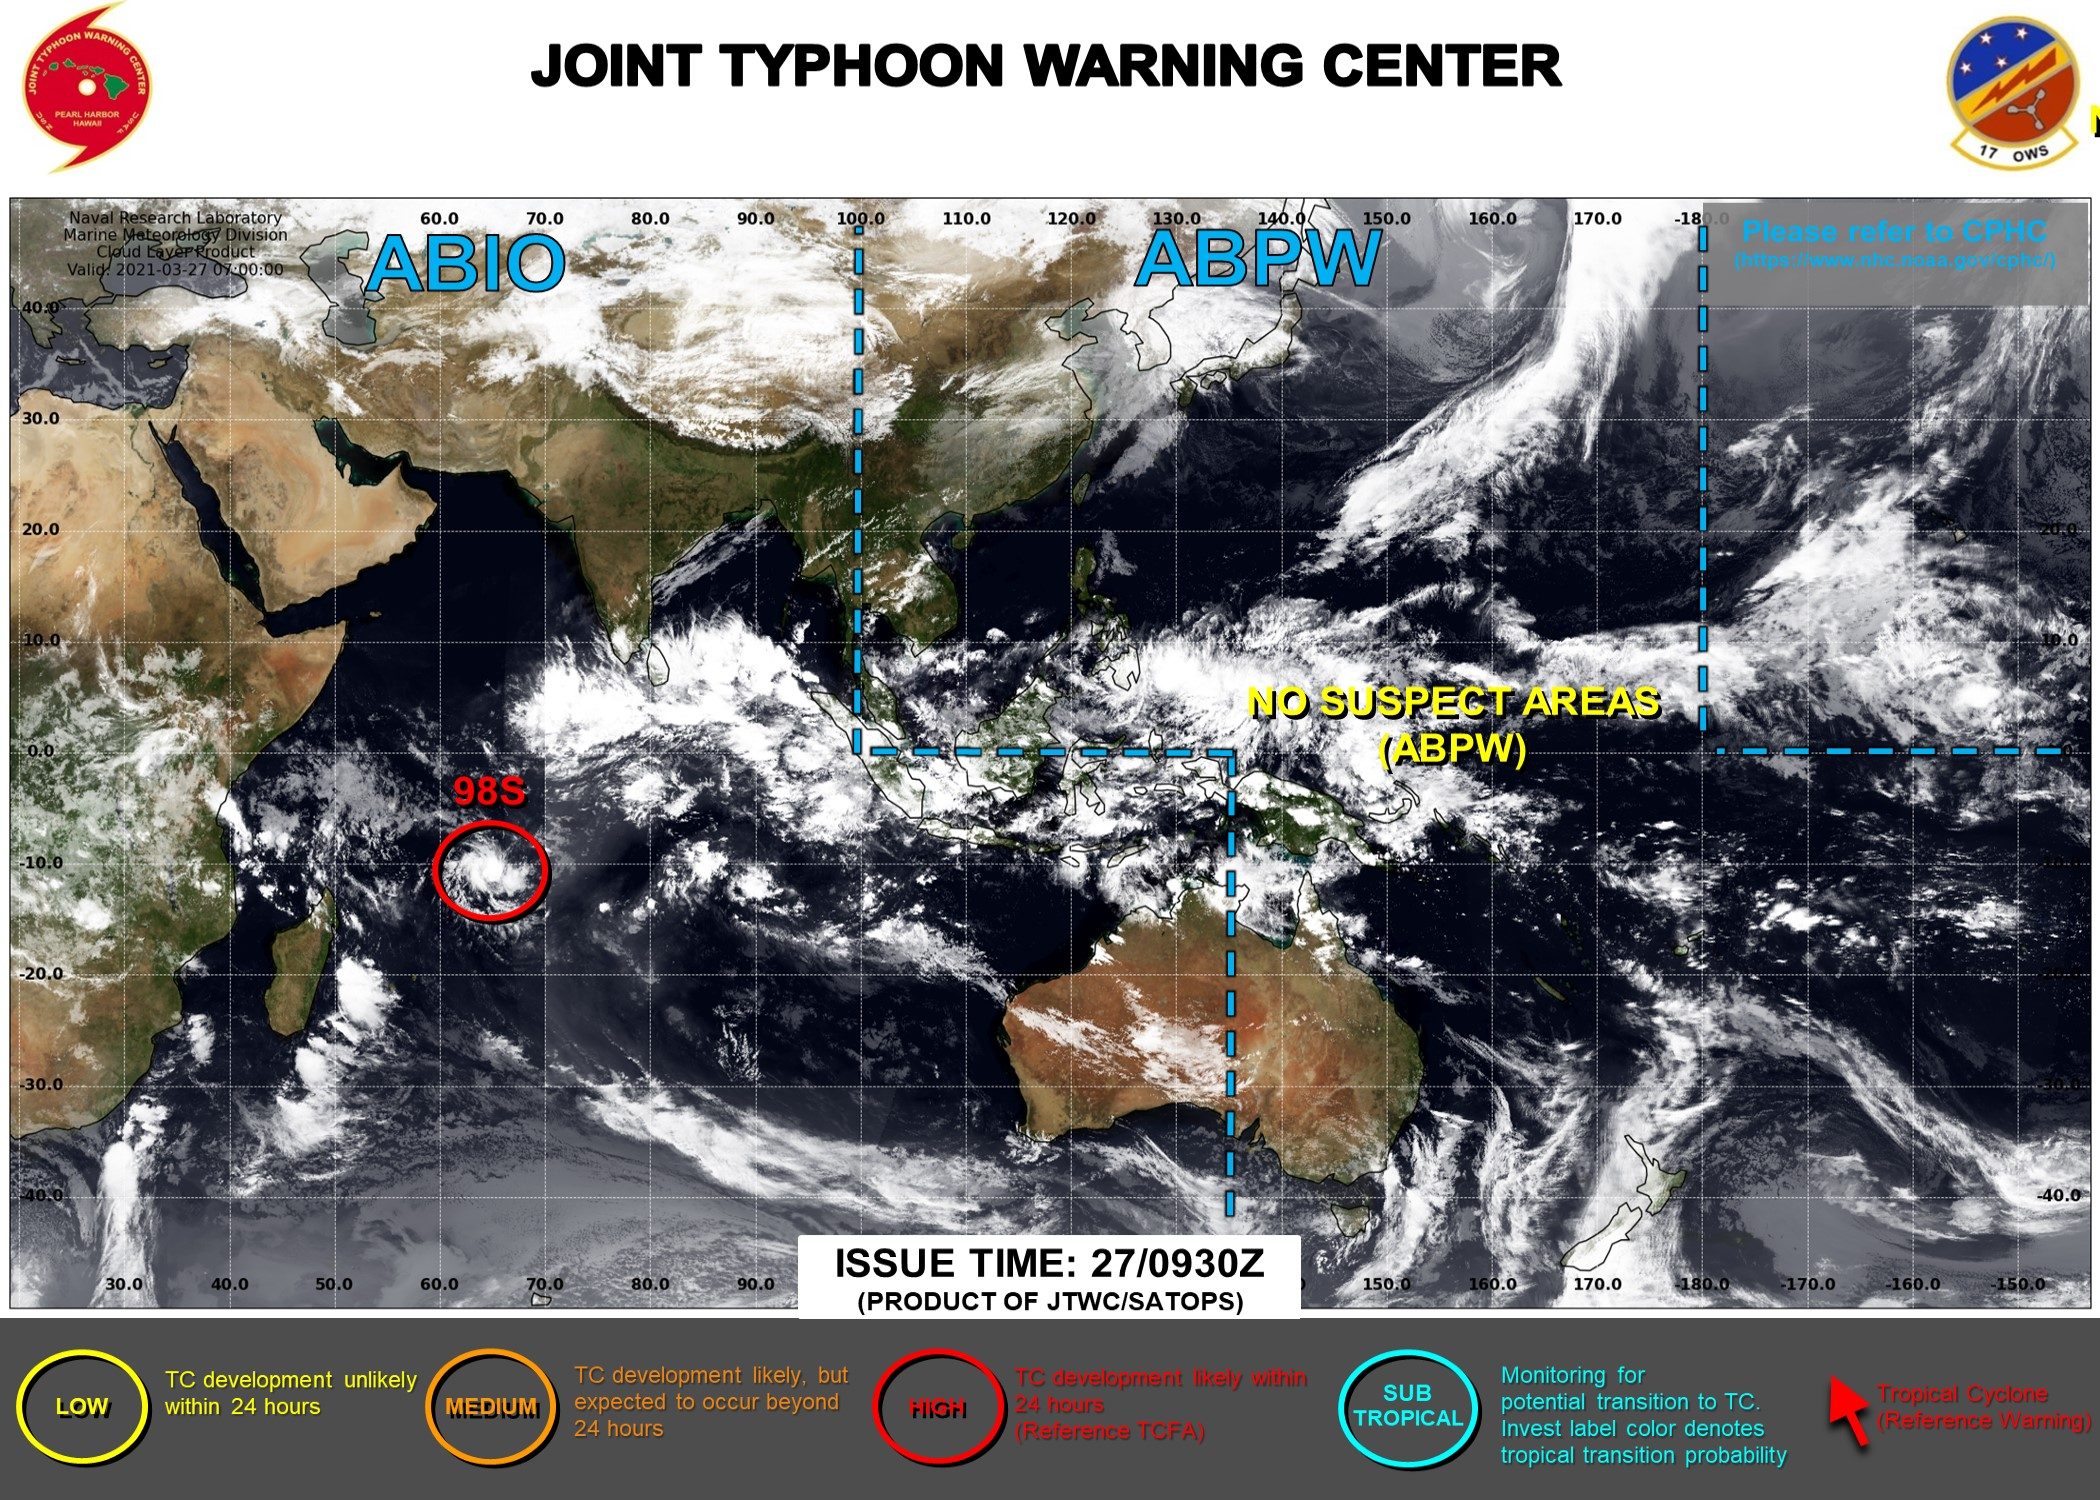 27/09UTC. INVEST 98S IS UP-GRADED TO HIGH FOR THE NEXT 24HOURS. JTWC HAS BEEN ISSUING 3HOURLY SATELLITE BULLETINS ON 98S. INVEST 95S IS WEAKENING AND HAS BEEN REMOVED FROM THE MAP. THE 3HOURLY SATELLITE BULLETINS WERE DISCONTINUED AT 27/0815UTC.